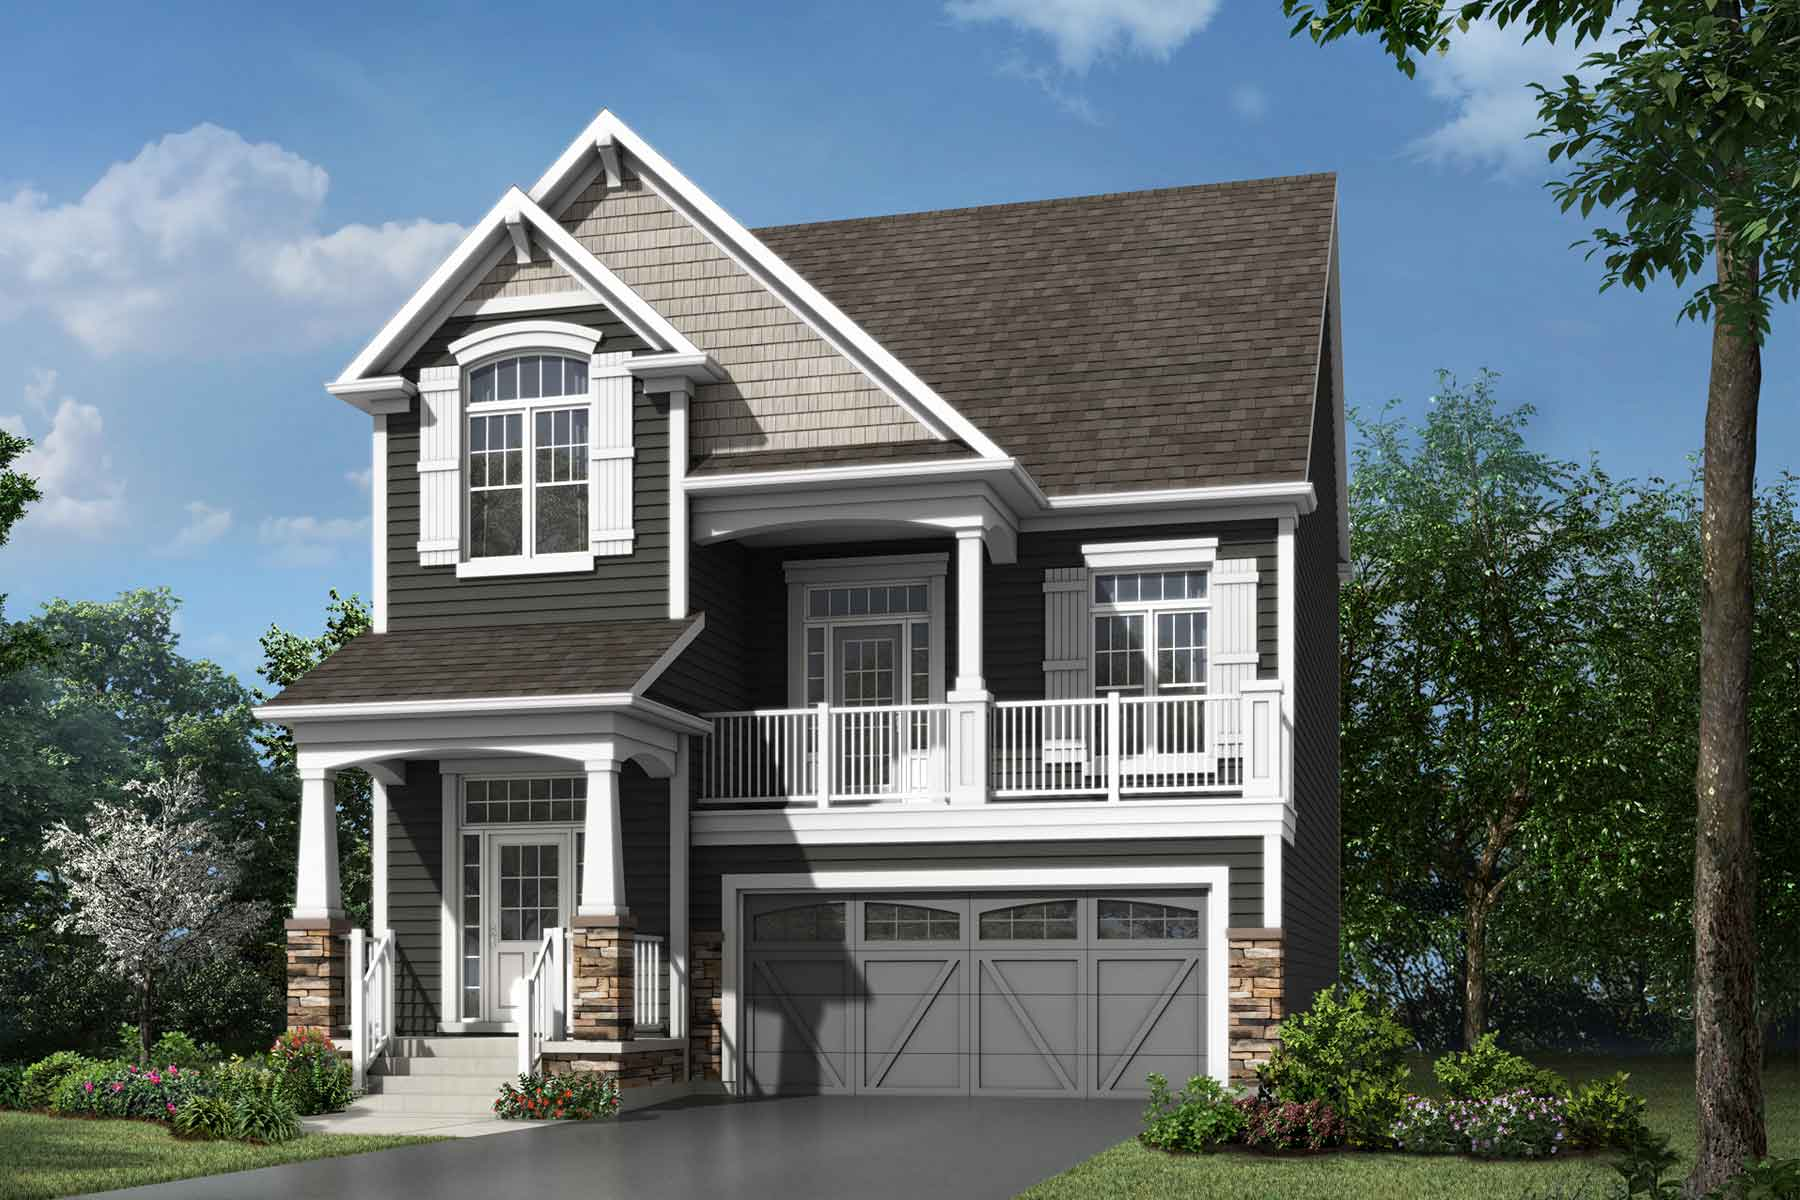 Onyx Plan elevationcraftsman_cityscape_onyx at Cityscape in Calgary Alberta by Mattamy Homes